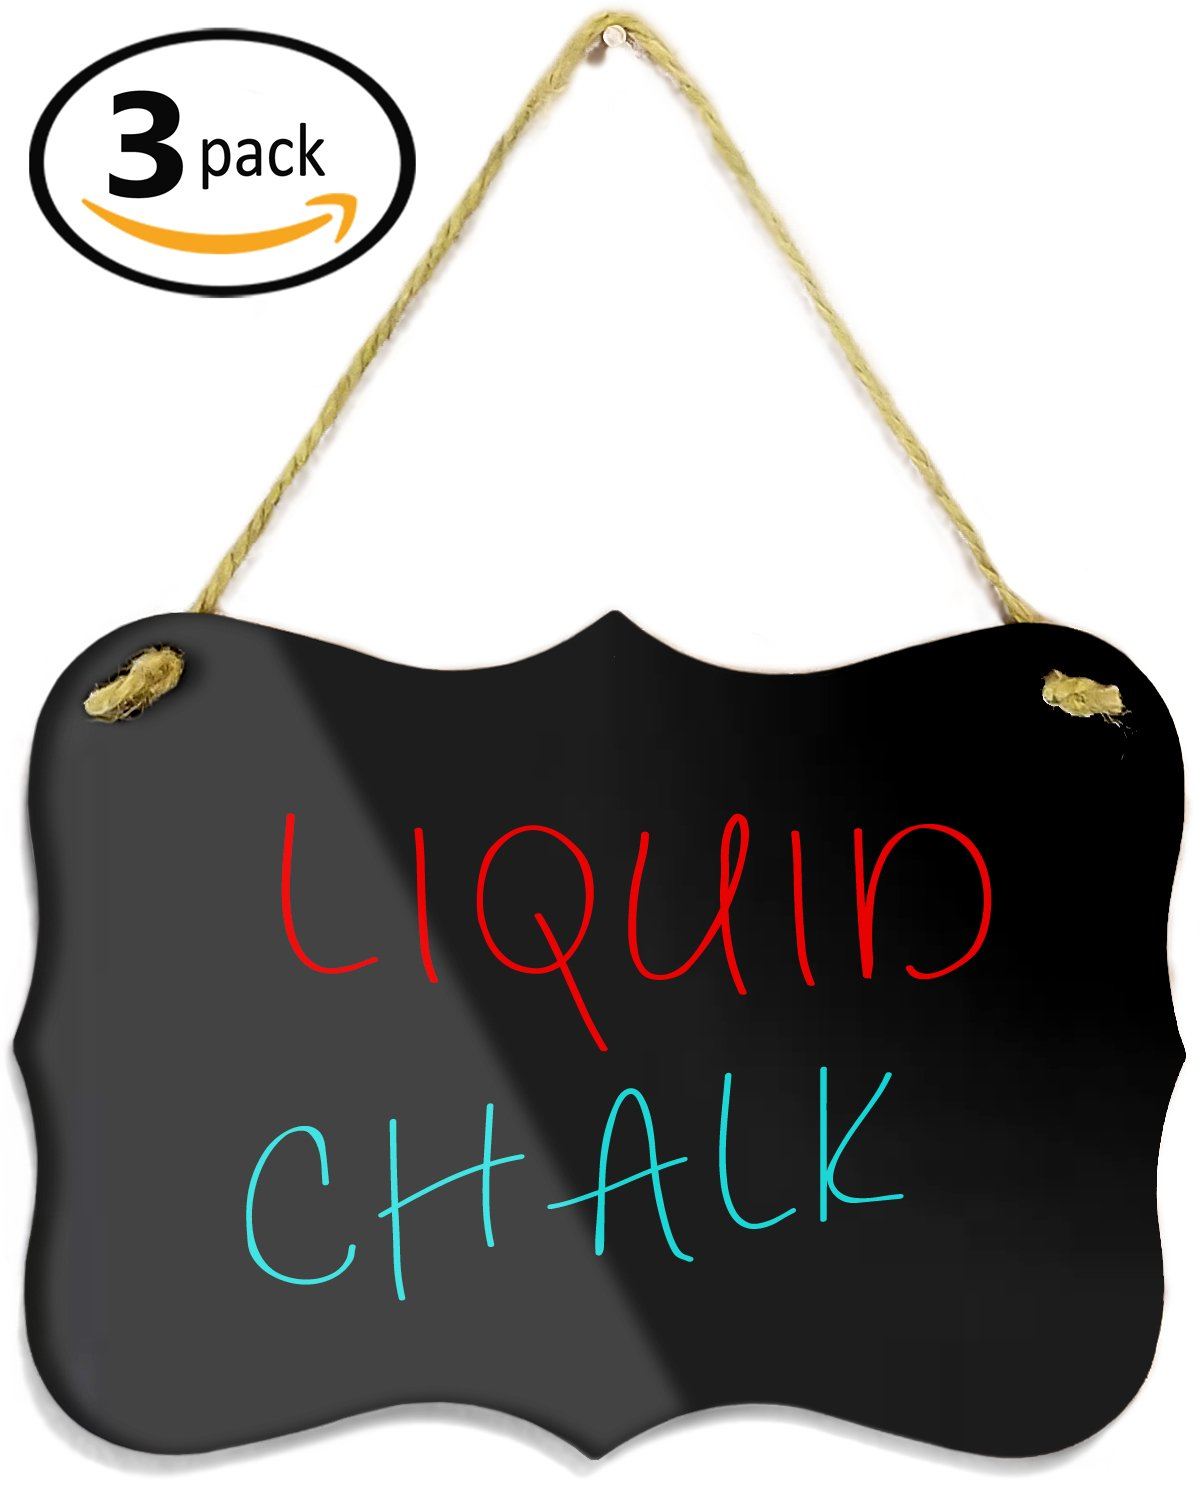 Small Hanging Acrylic Chalkboard Signs 4x6'' - Double Sided for Standard Chalk & other side for Liquid Chalk Marker- Memo Message Sign - Mini Blackboard - For Crafts - Menus - Florists - Events (3)